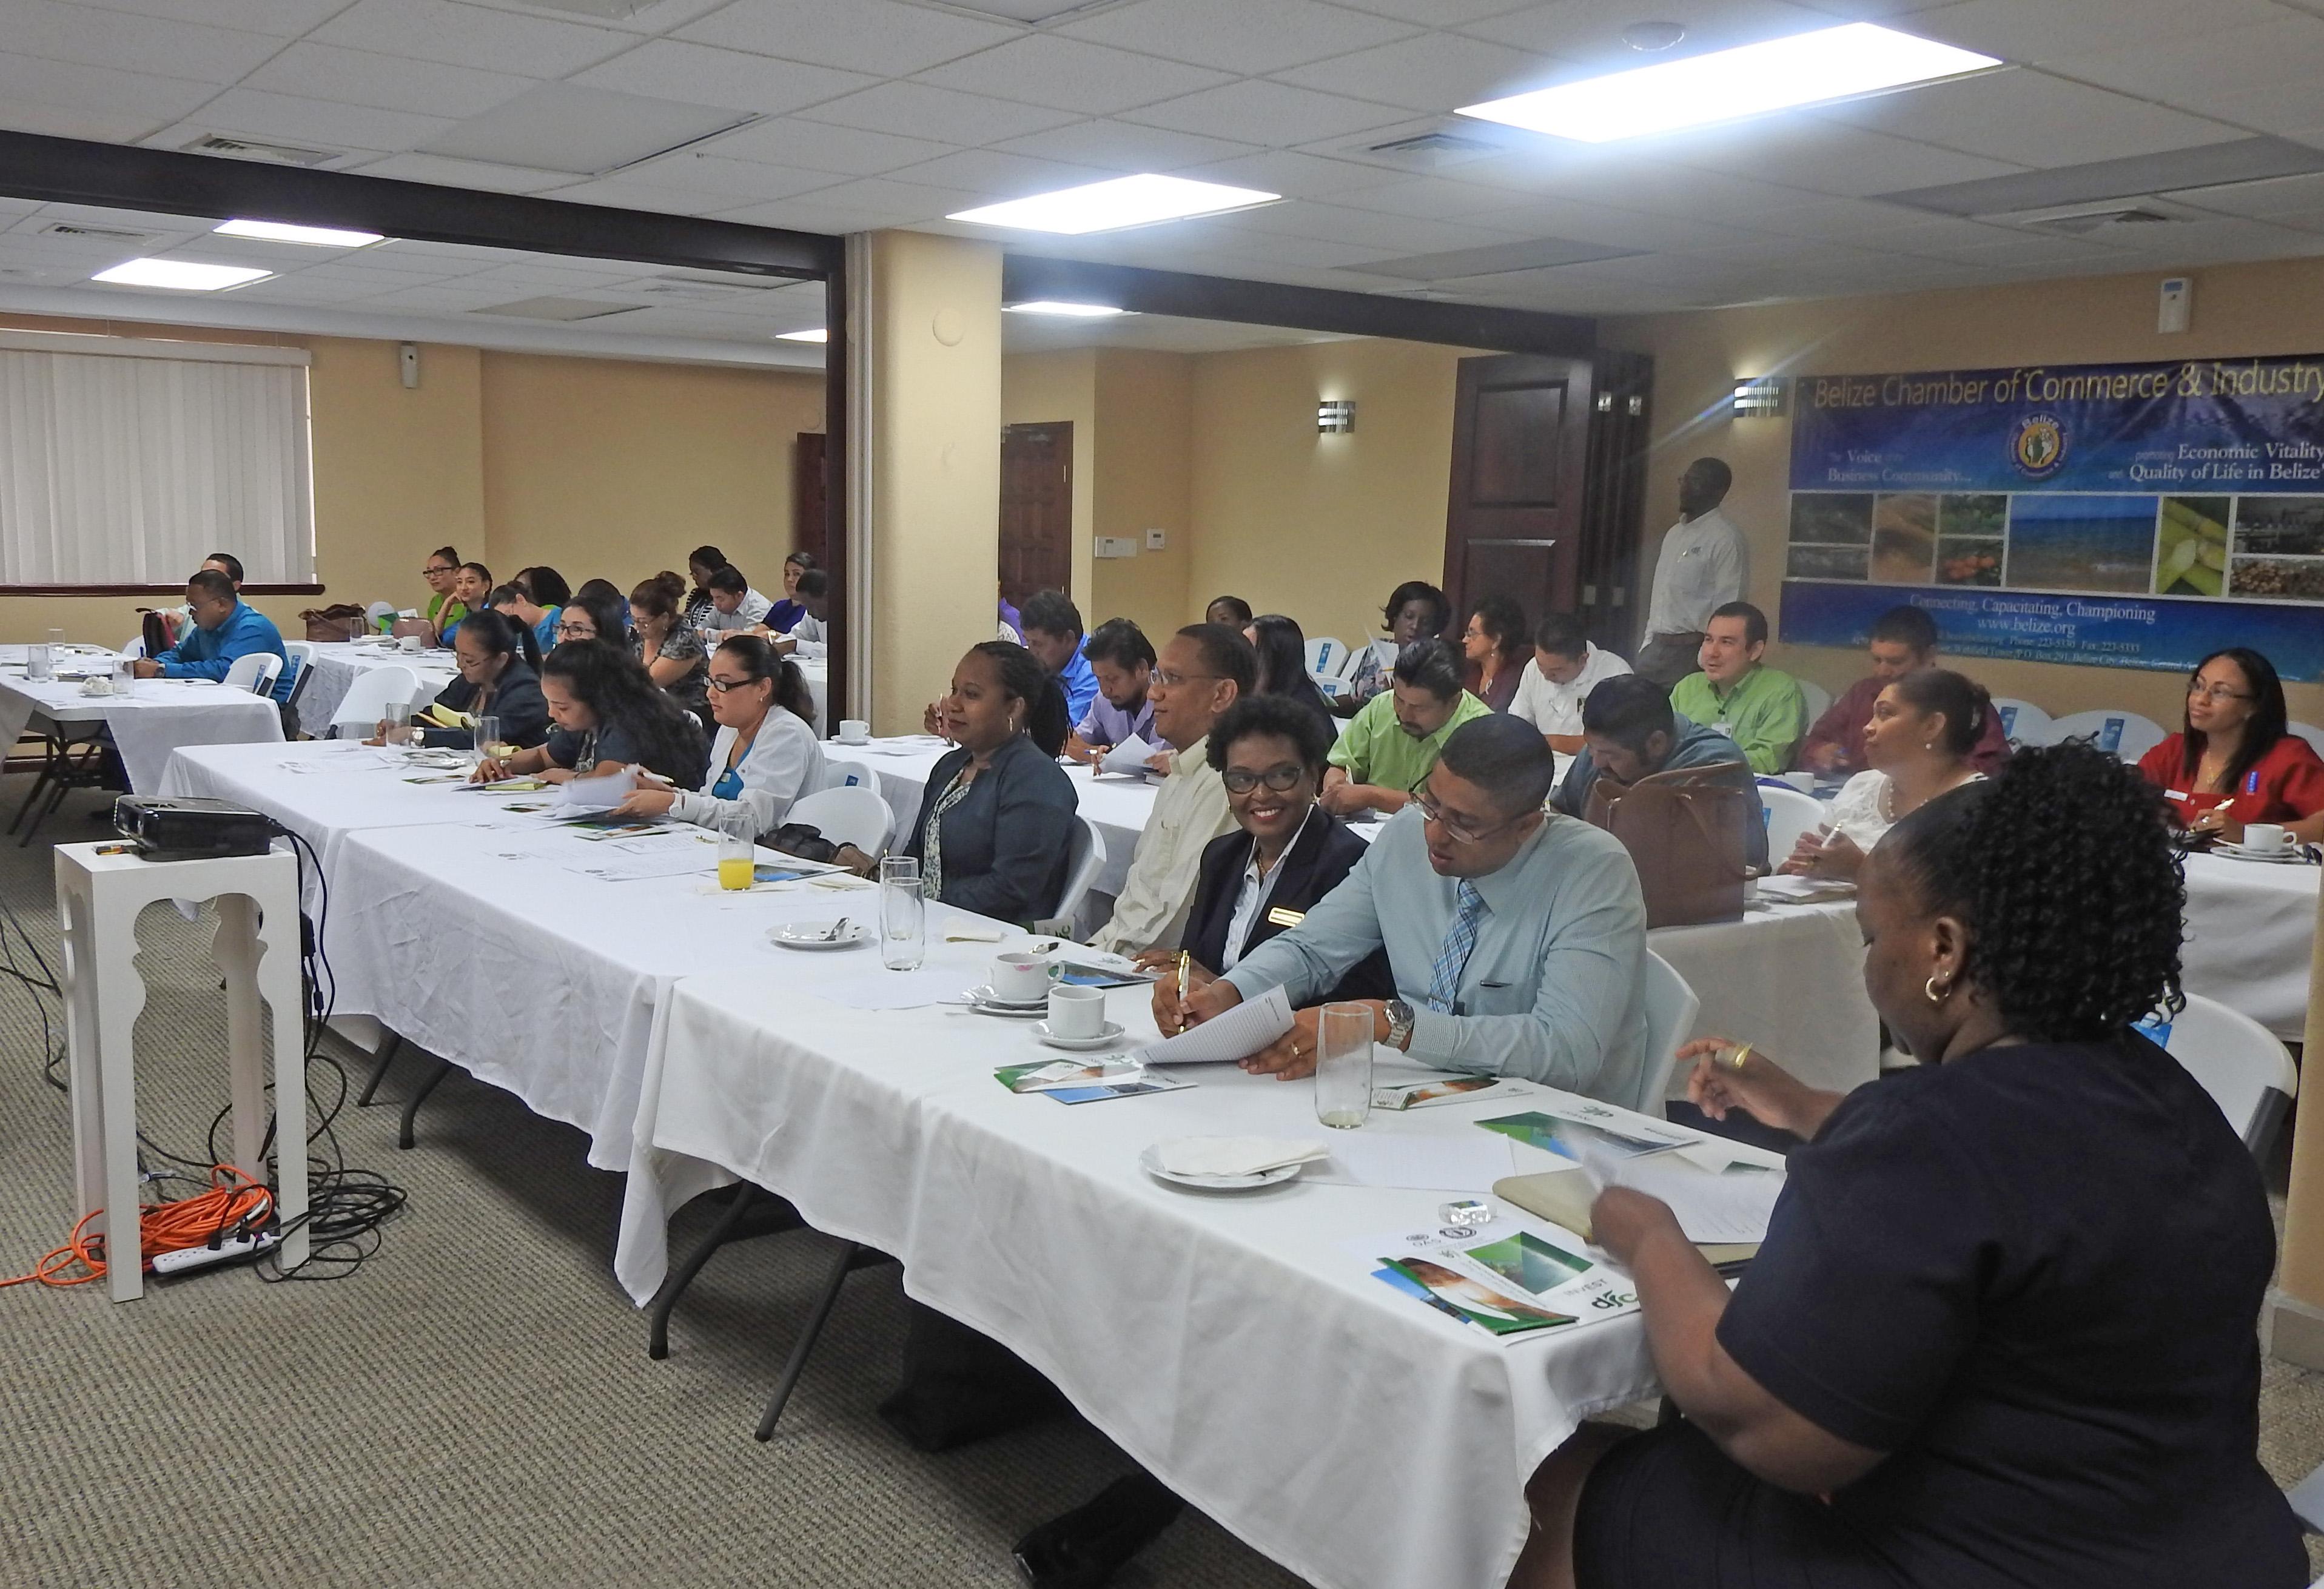 OAS Belize Office Partnered with Belize Chamber of Commerce to Celebrate OAS' 70th Anniversary